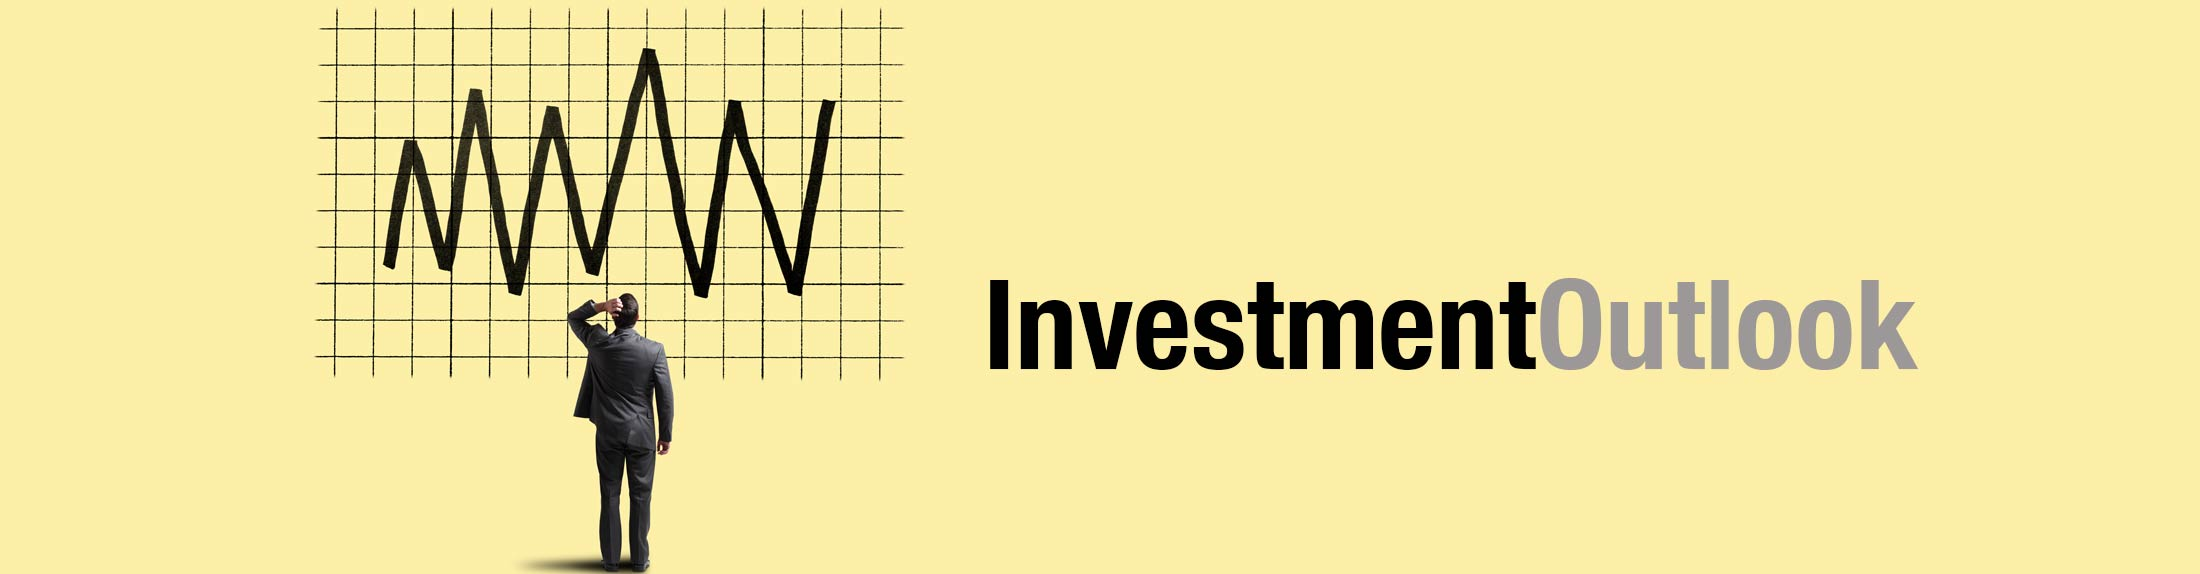 Investment Outlook by Kelley Wright | IQ Trends